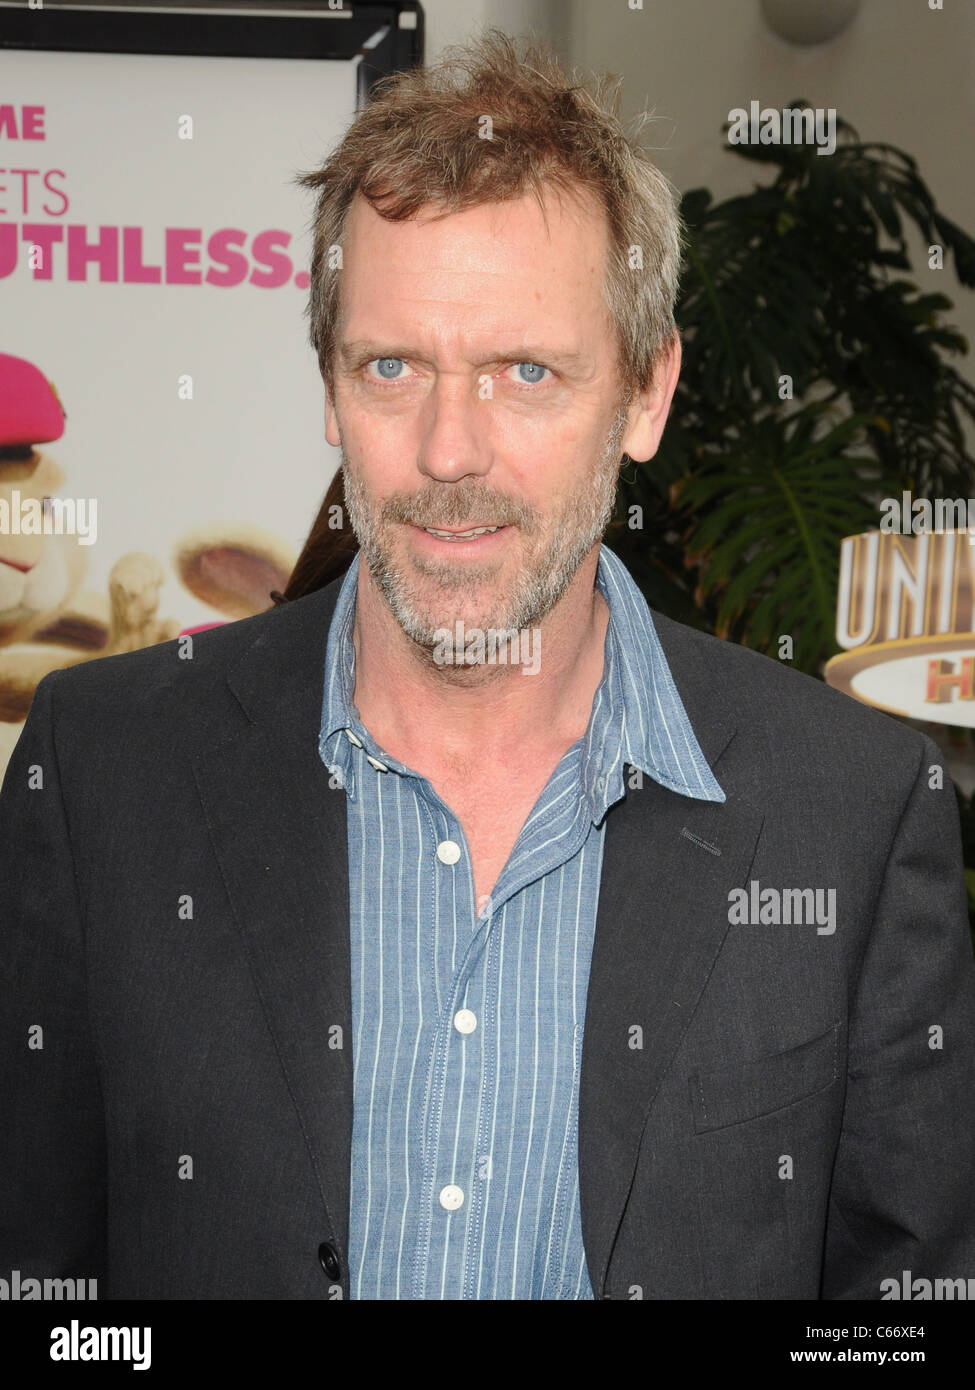 Hugh Laurie at arrivals for HOP Premiere, Universal CityWalk, Los Angeles, CA March 27, 2011. Photo By: Dee Cercone/Everett - Stock Image